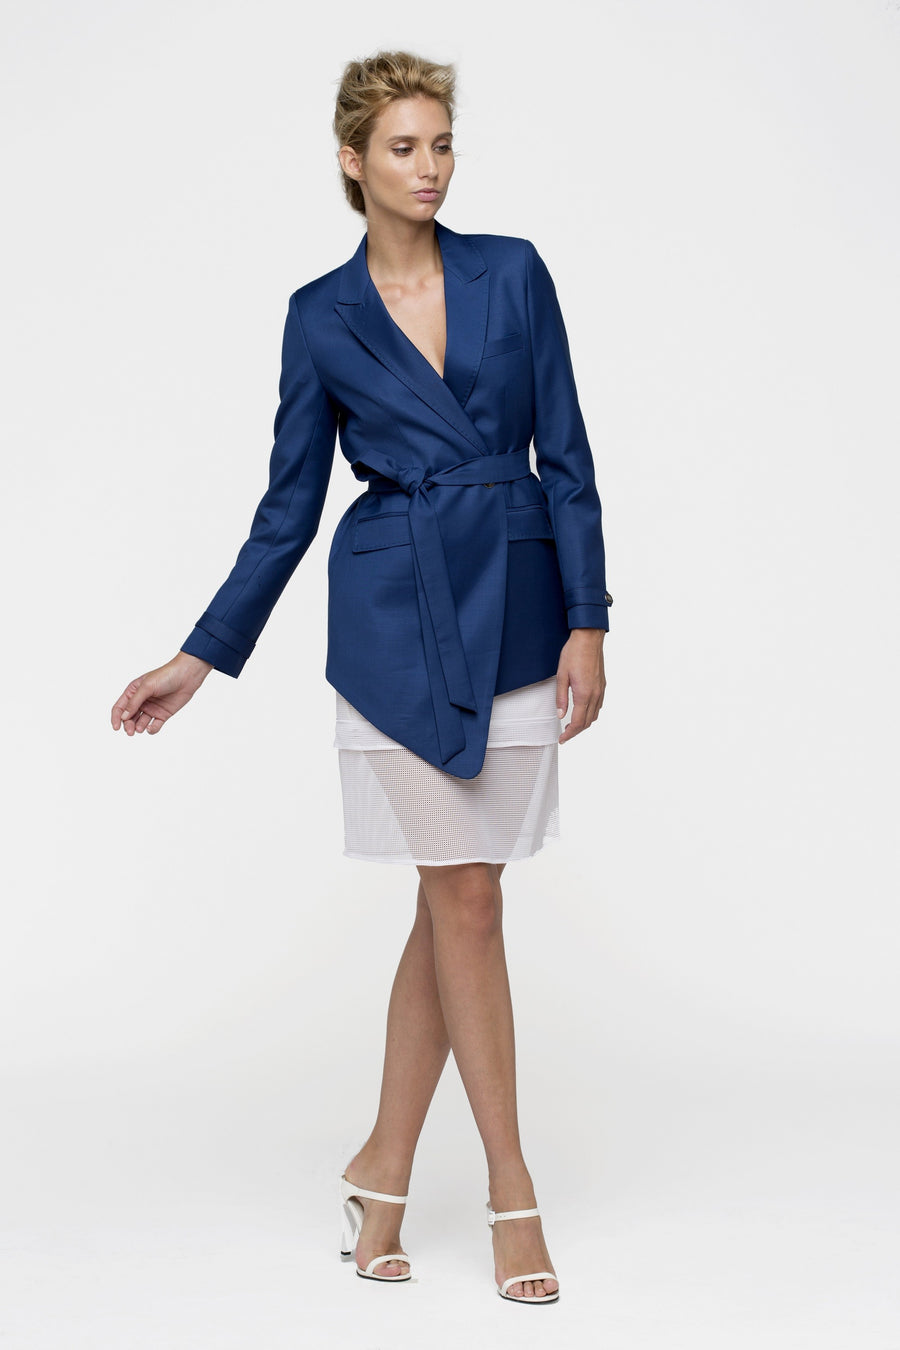 Blue Navy Satin Silk Belted Asymetric Jacket Women By Lucie Brochard - Lucie Brochard.vô